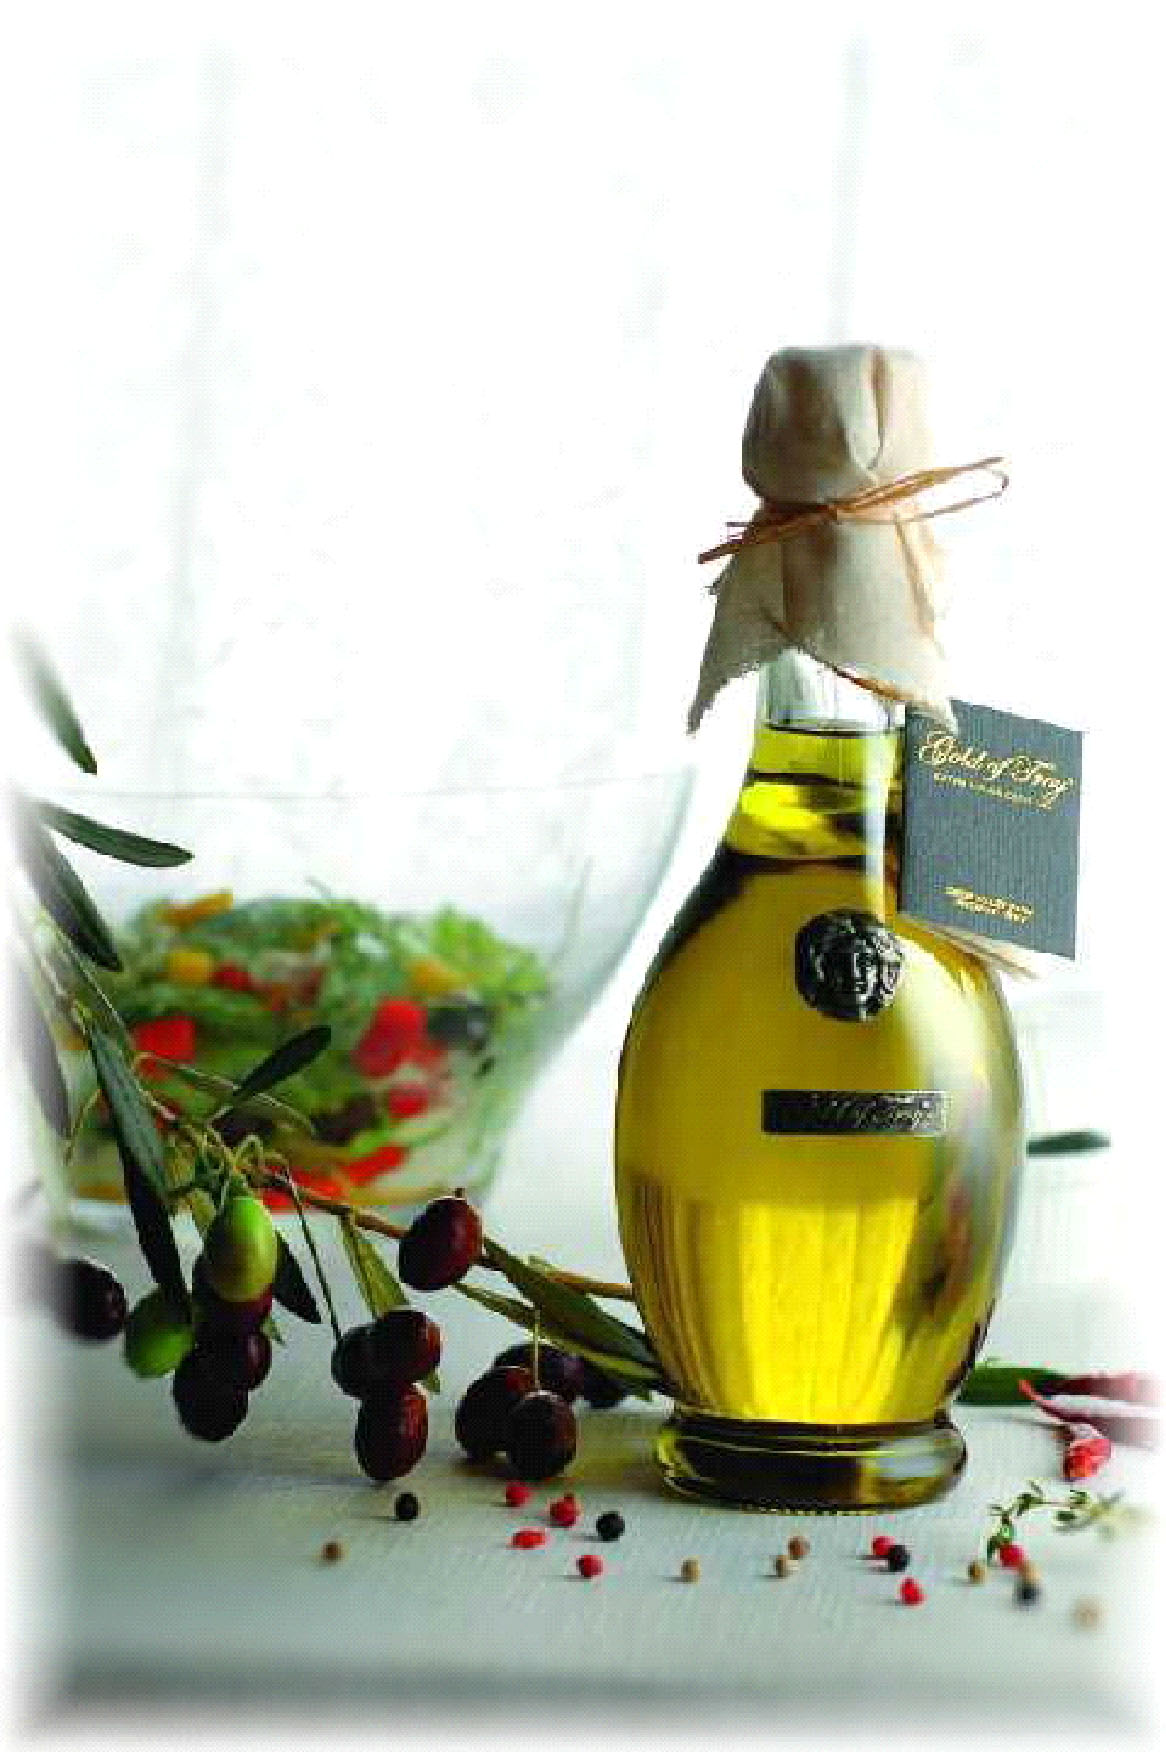 http://billieariian.files.wordpress.com/2011/03/olive-oil.jpg